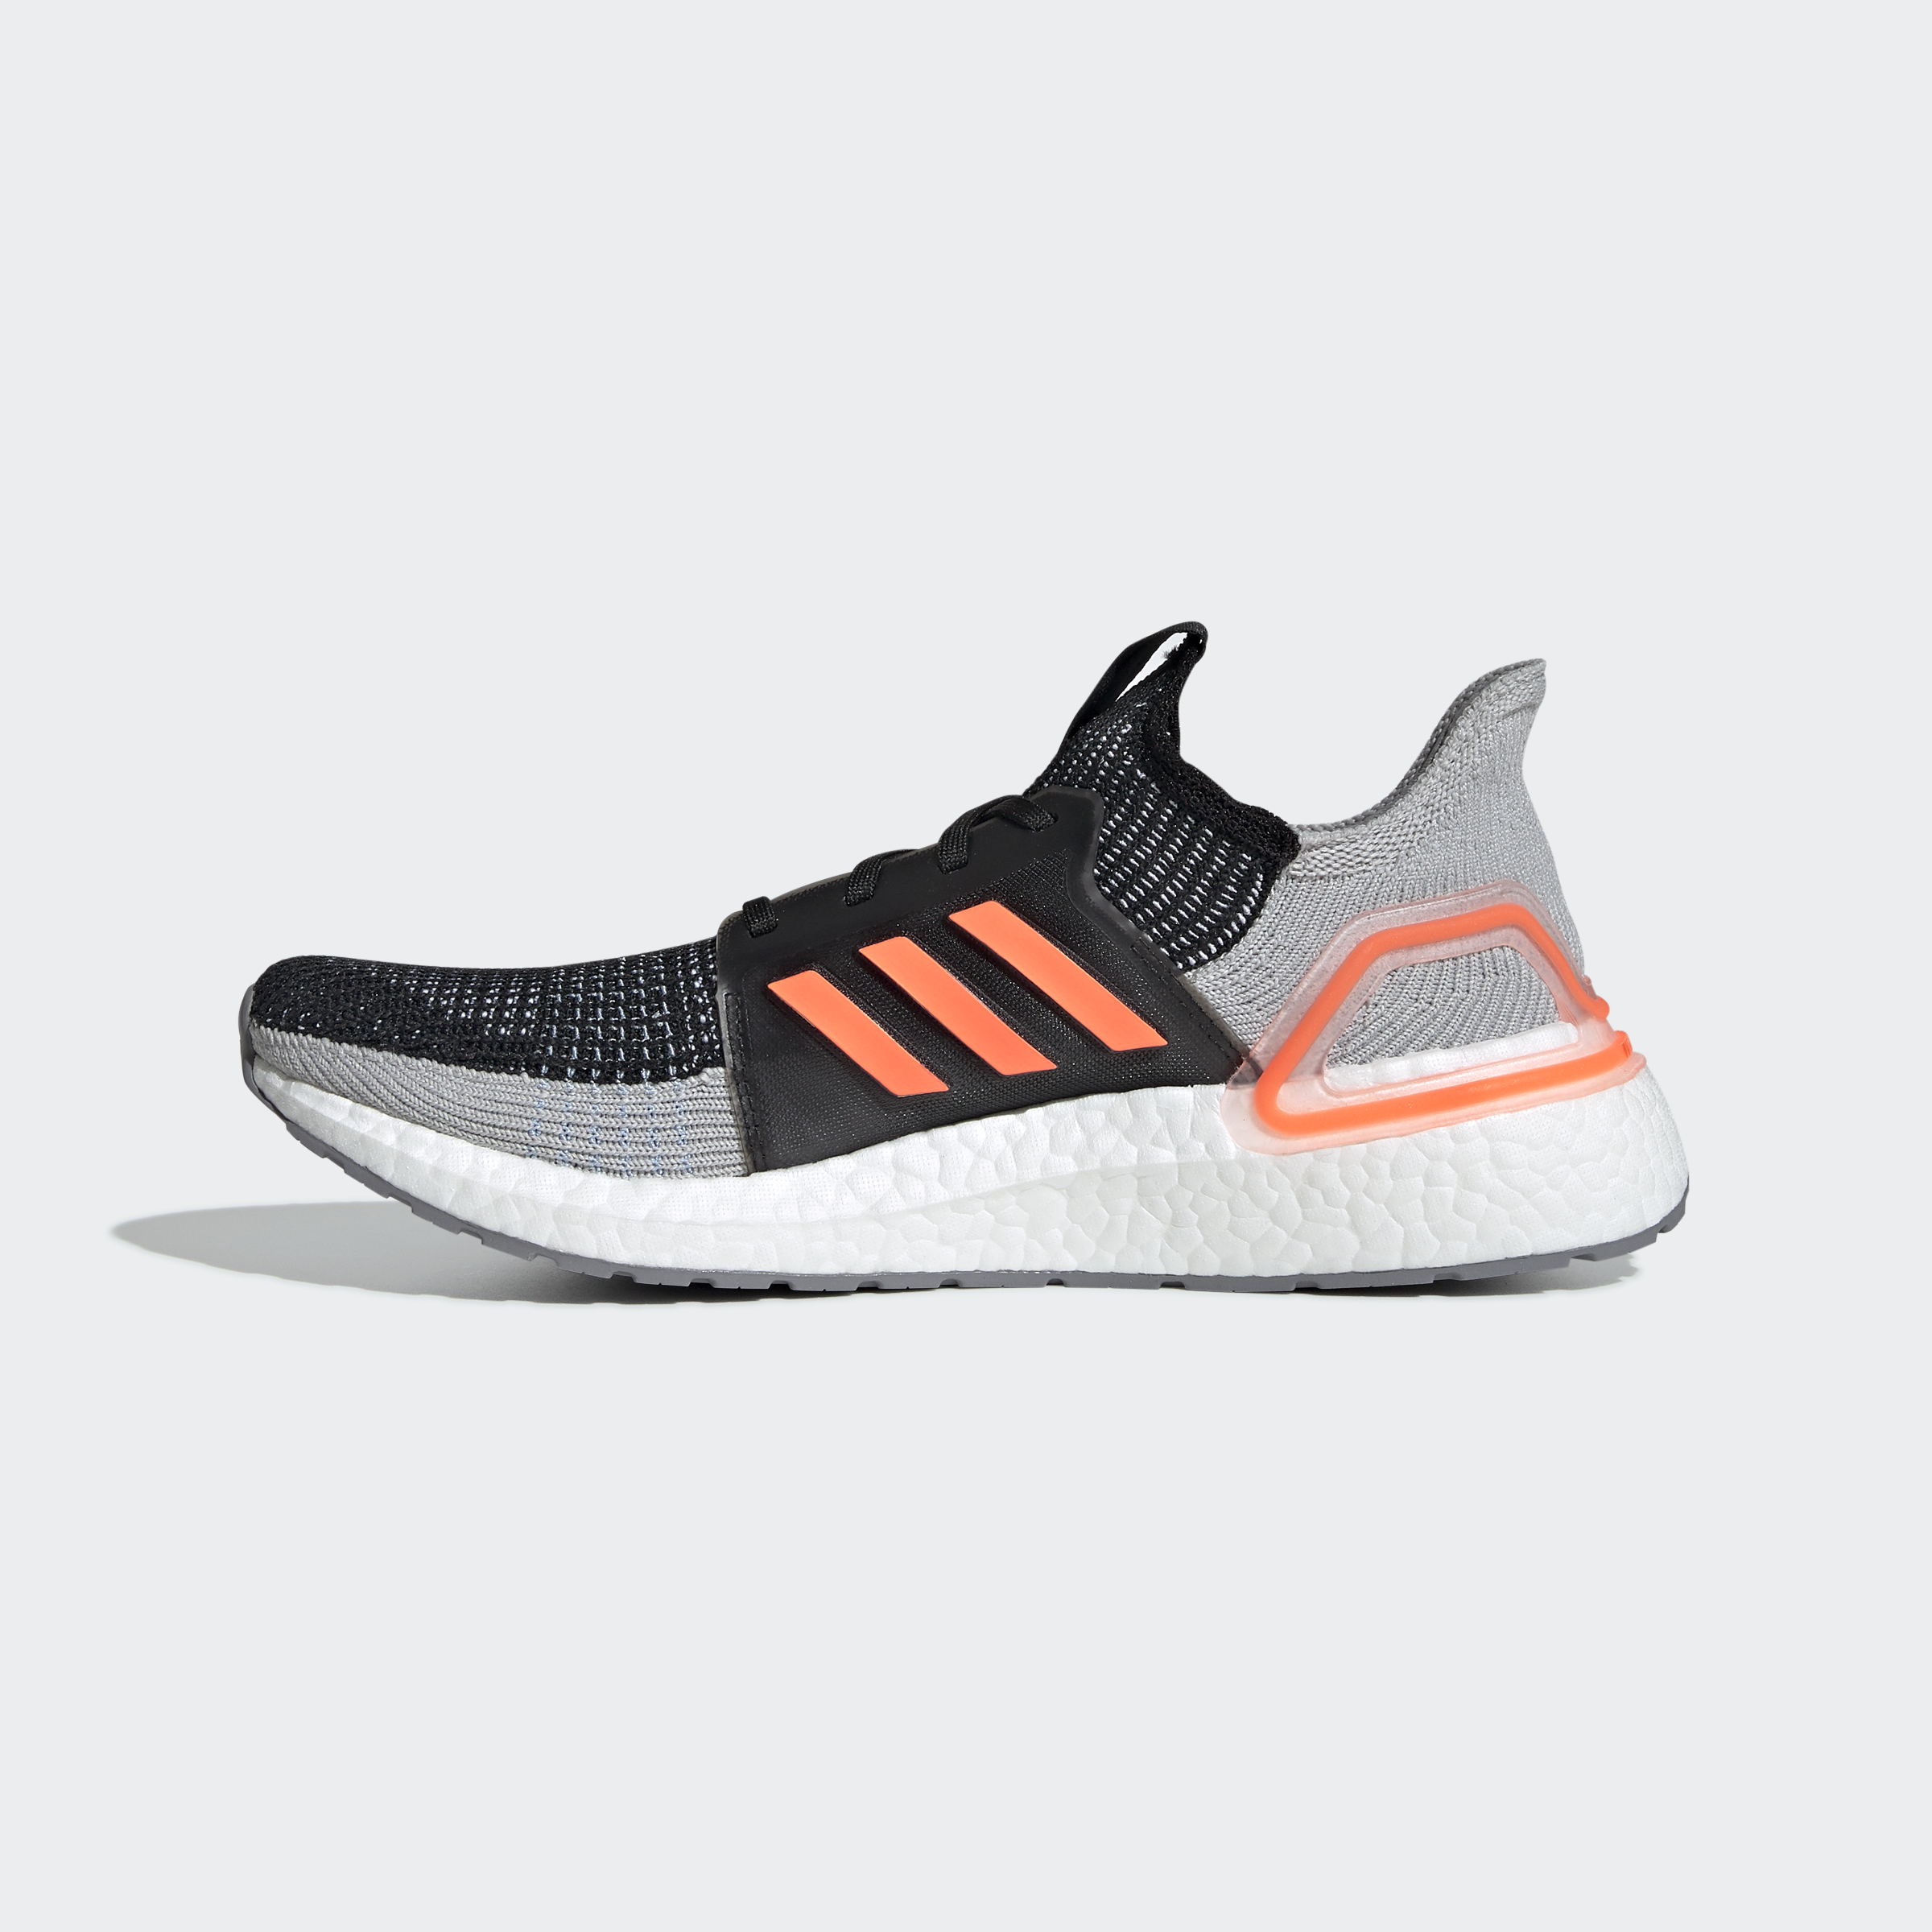 adidas-Ultraboost-19-Shoes-Athletic-amp-Sneakers thumbnail 119